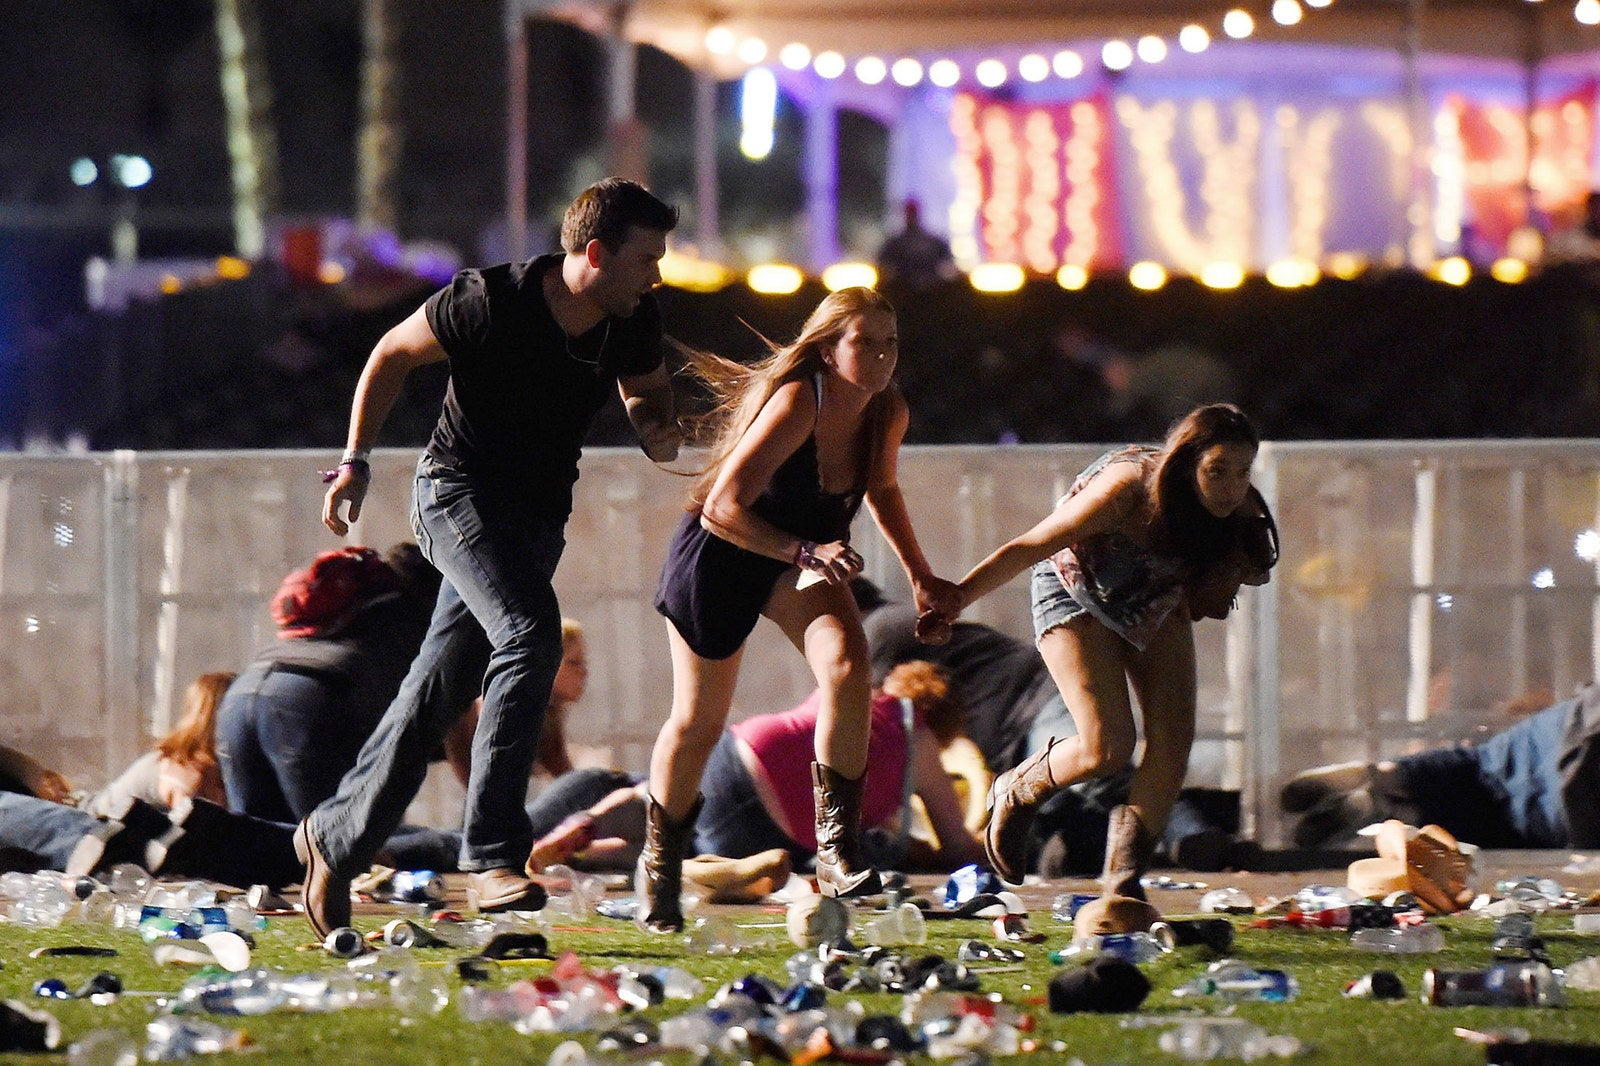 People run from the Route 91 Harvest country music festival after a gunman opened fire on Oct. 1, in Las Vegas, leaving 59 people dead and injuring 546.